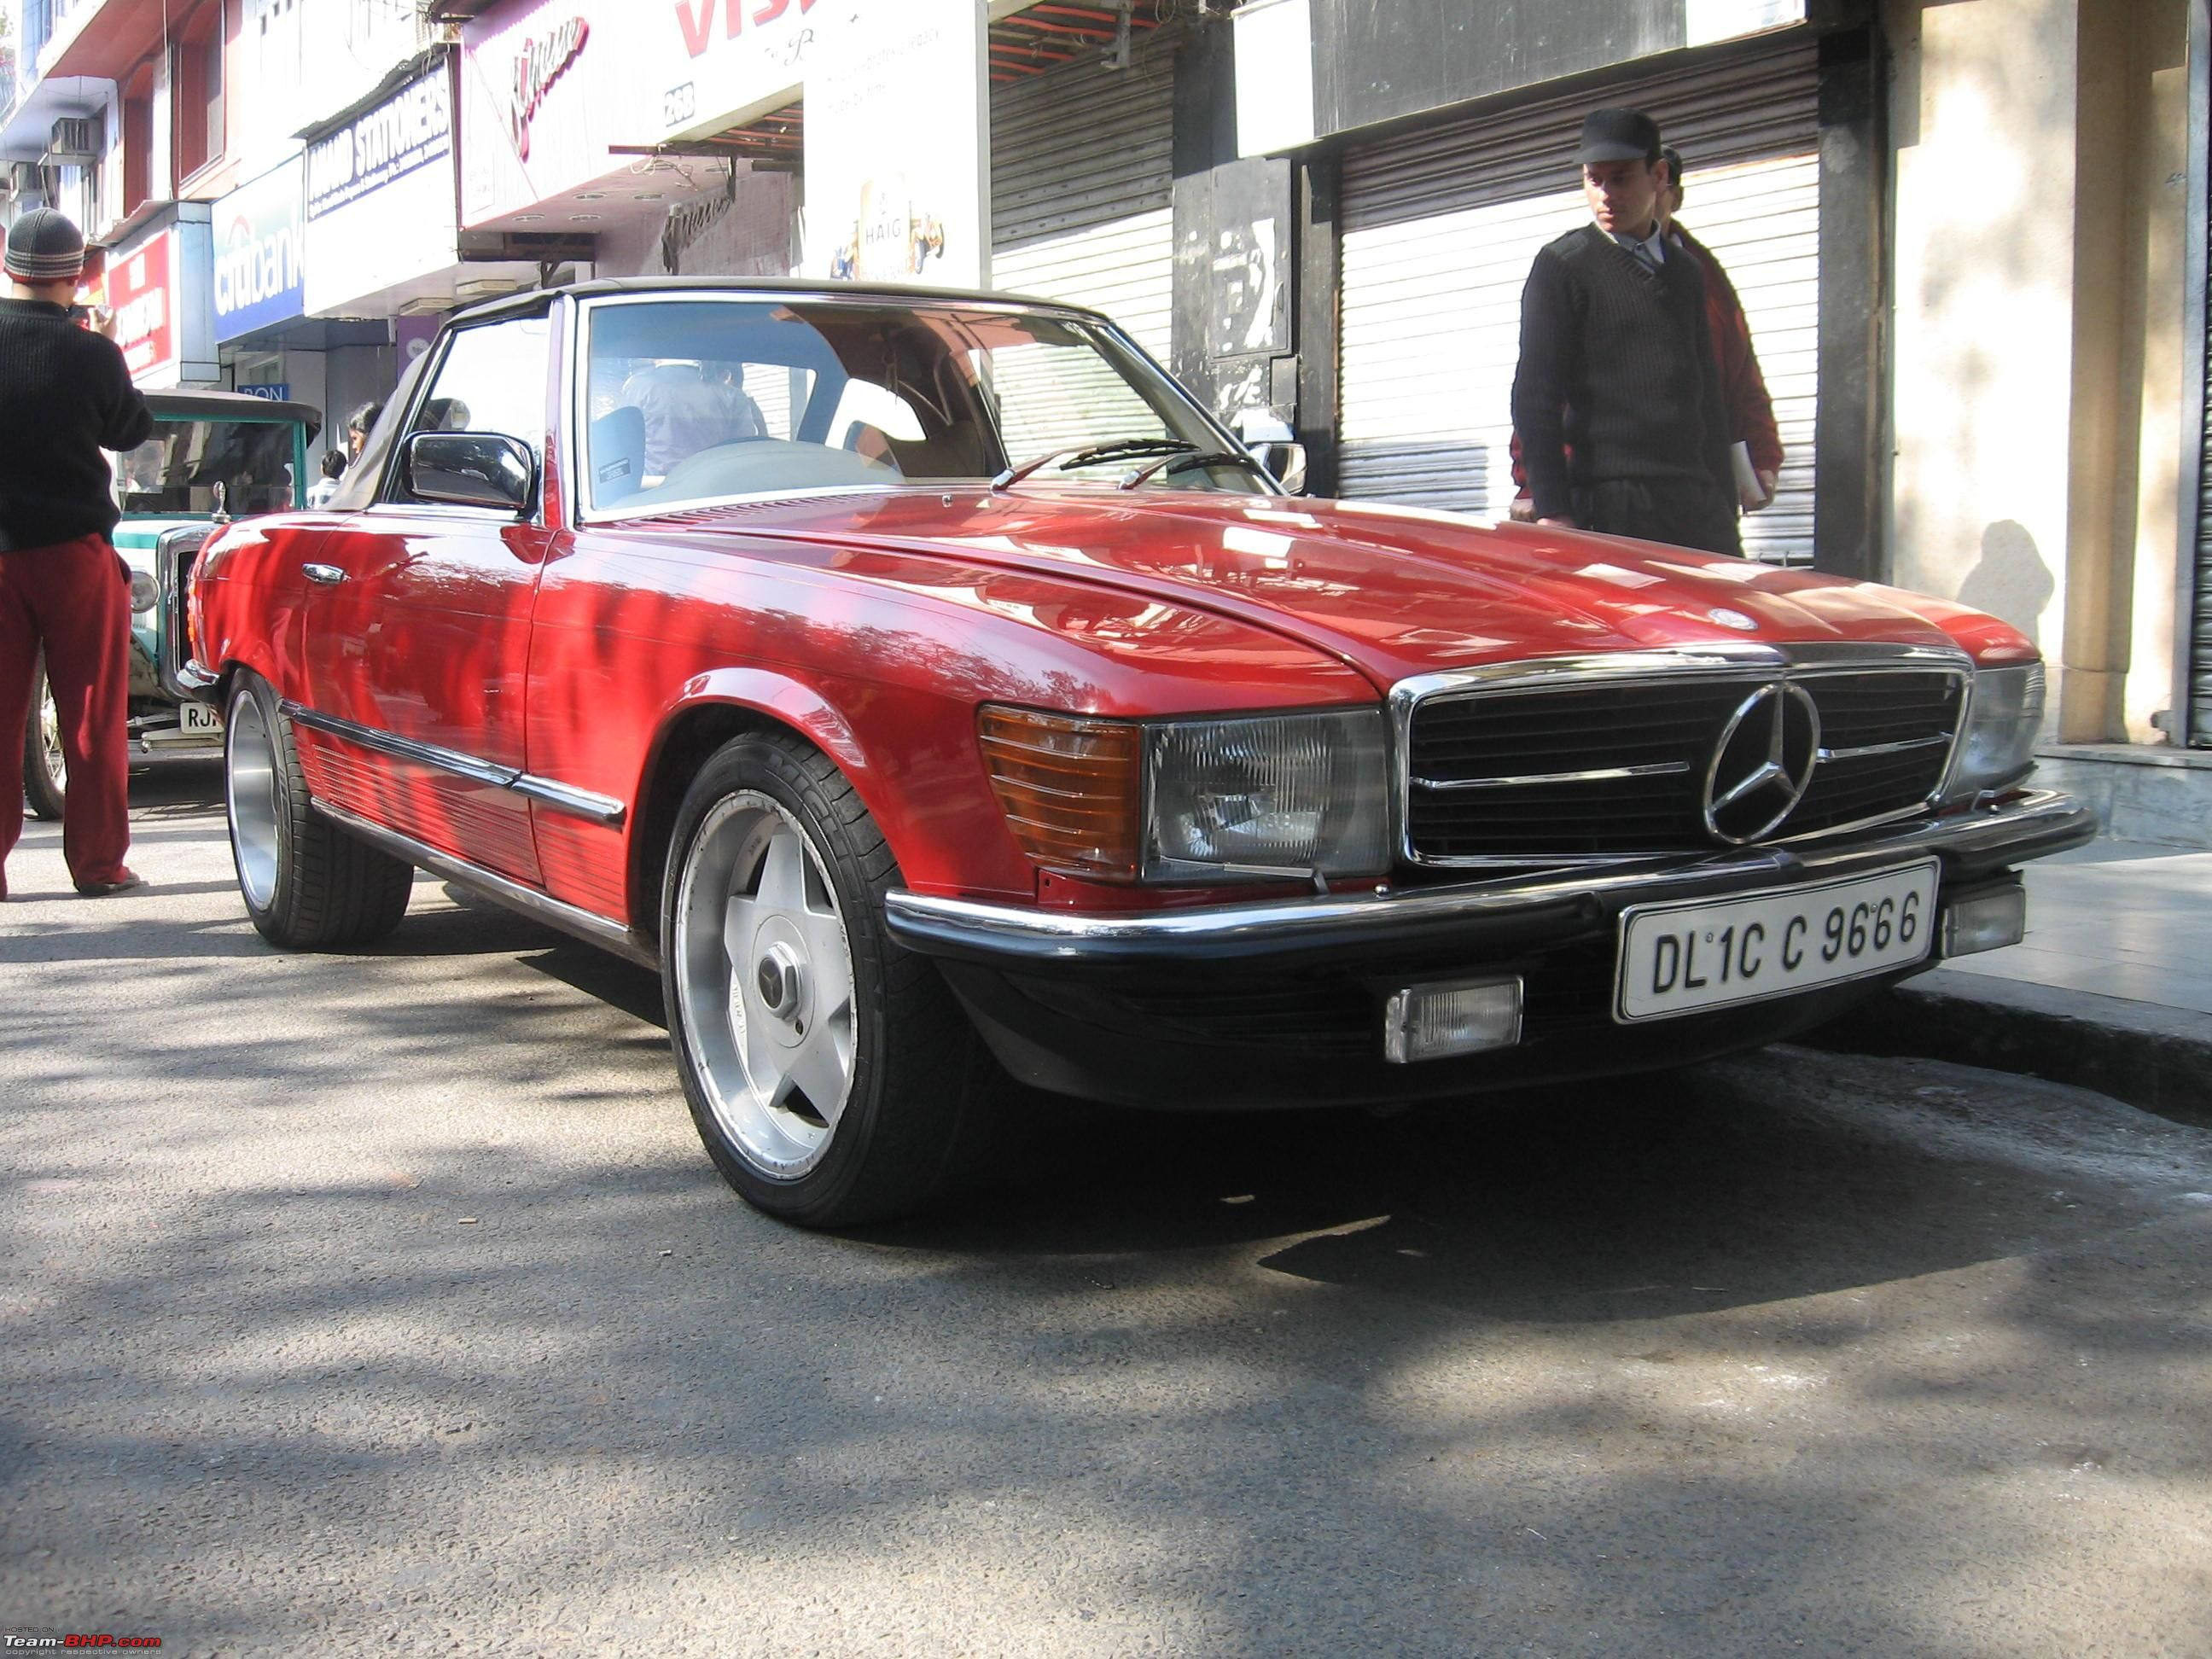 Vintage Classic Mercedes Benz Cars In India Mercedes Benz Cars